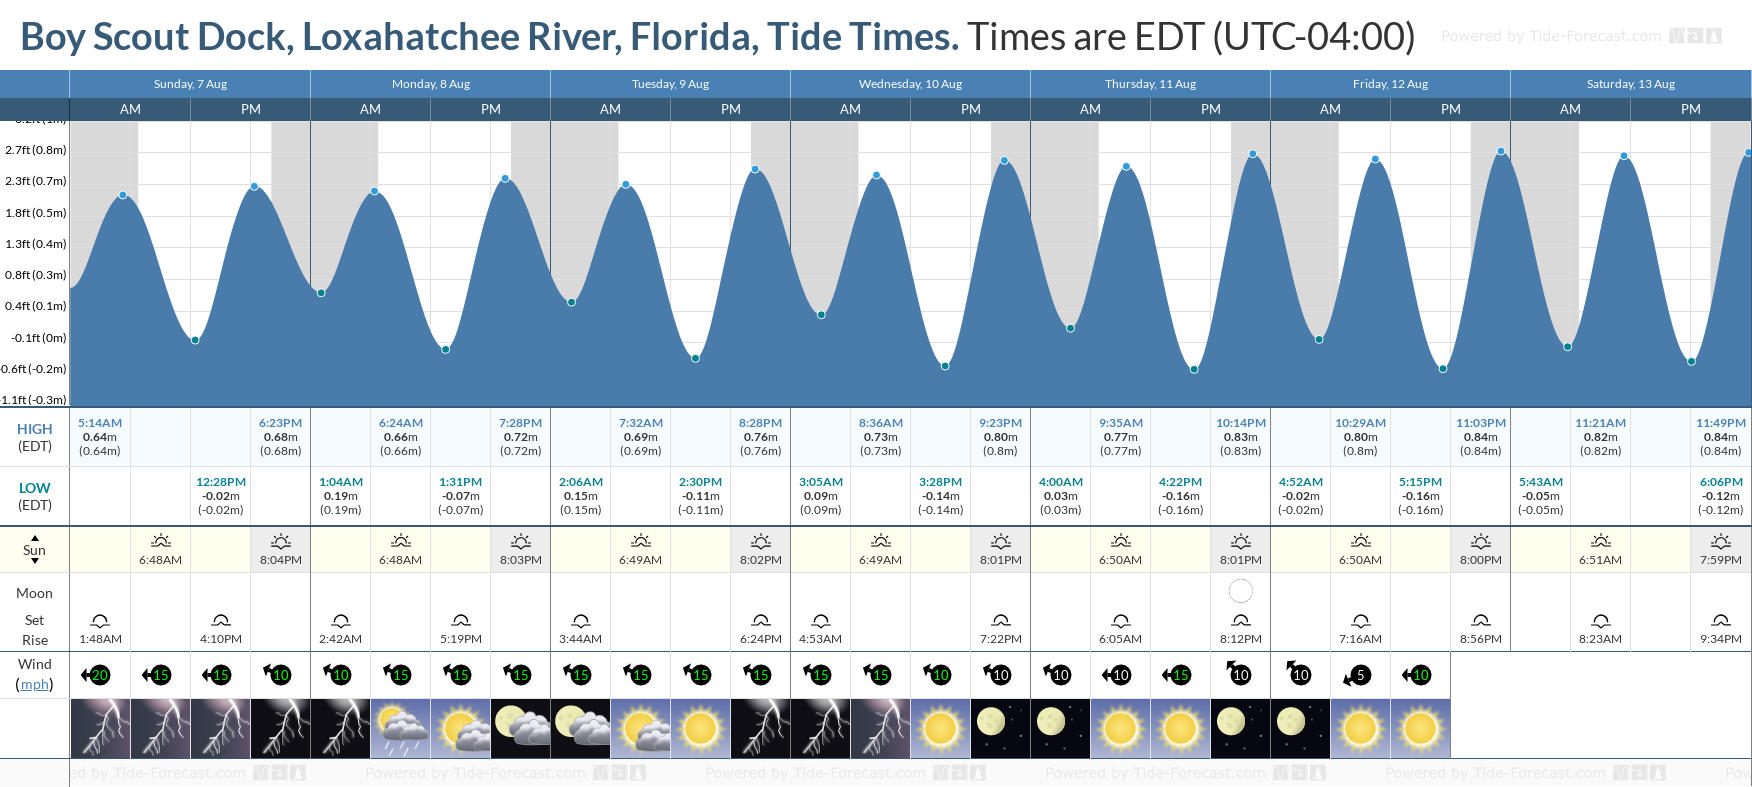 Boy Scout Dock, Loxahatchee River, Florida Tide Chart including high and low tide tide times for the next 7 days